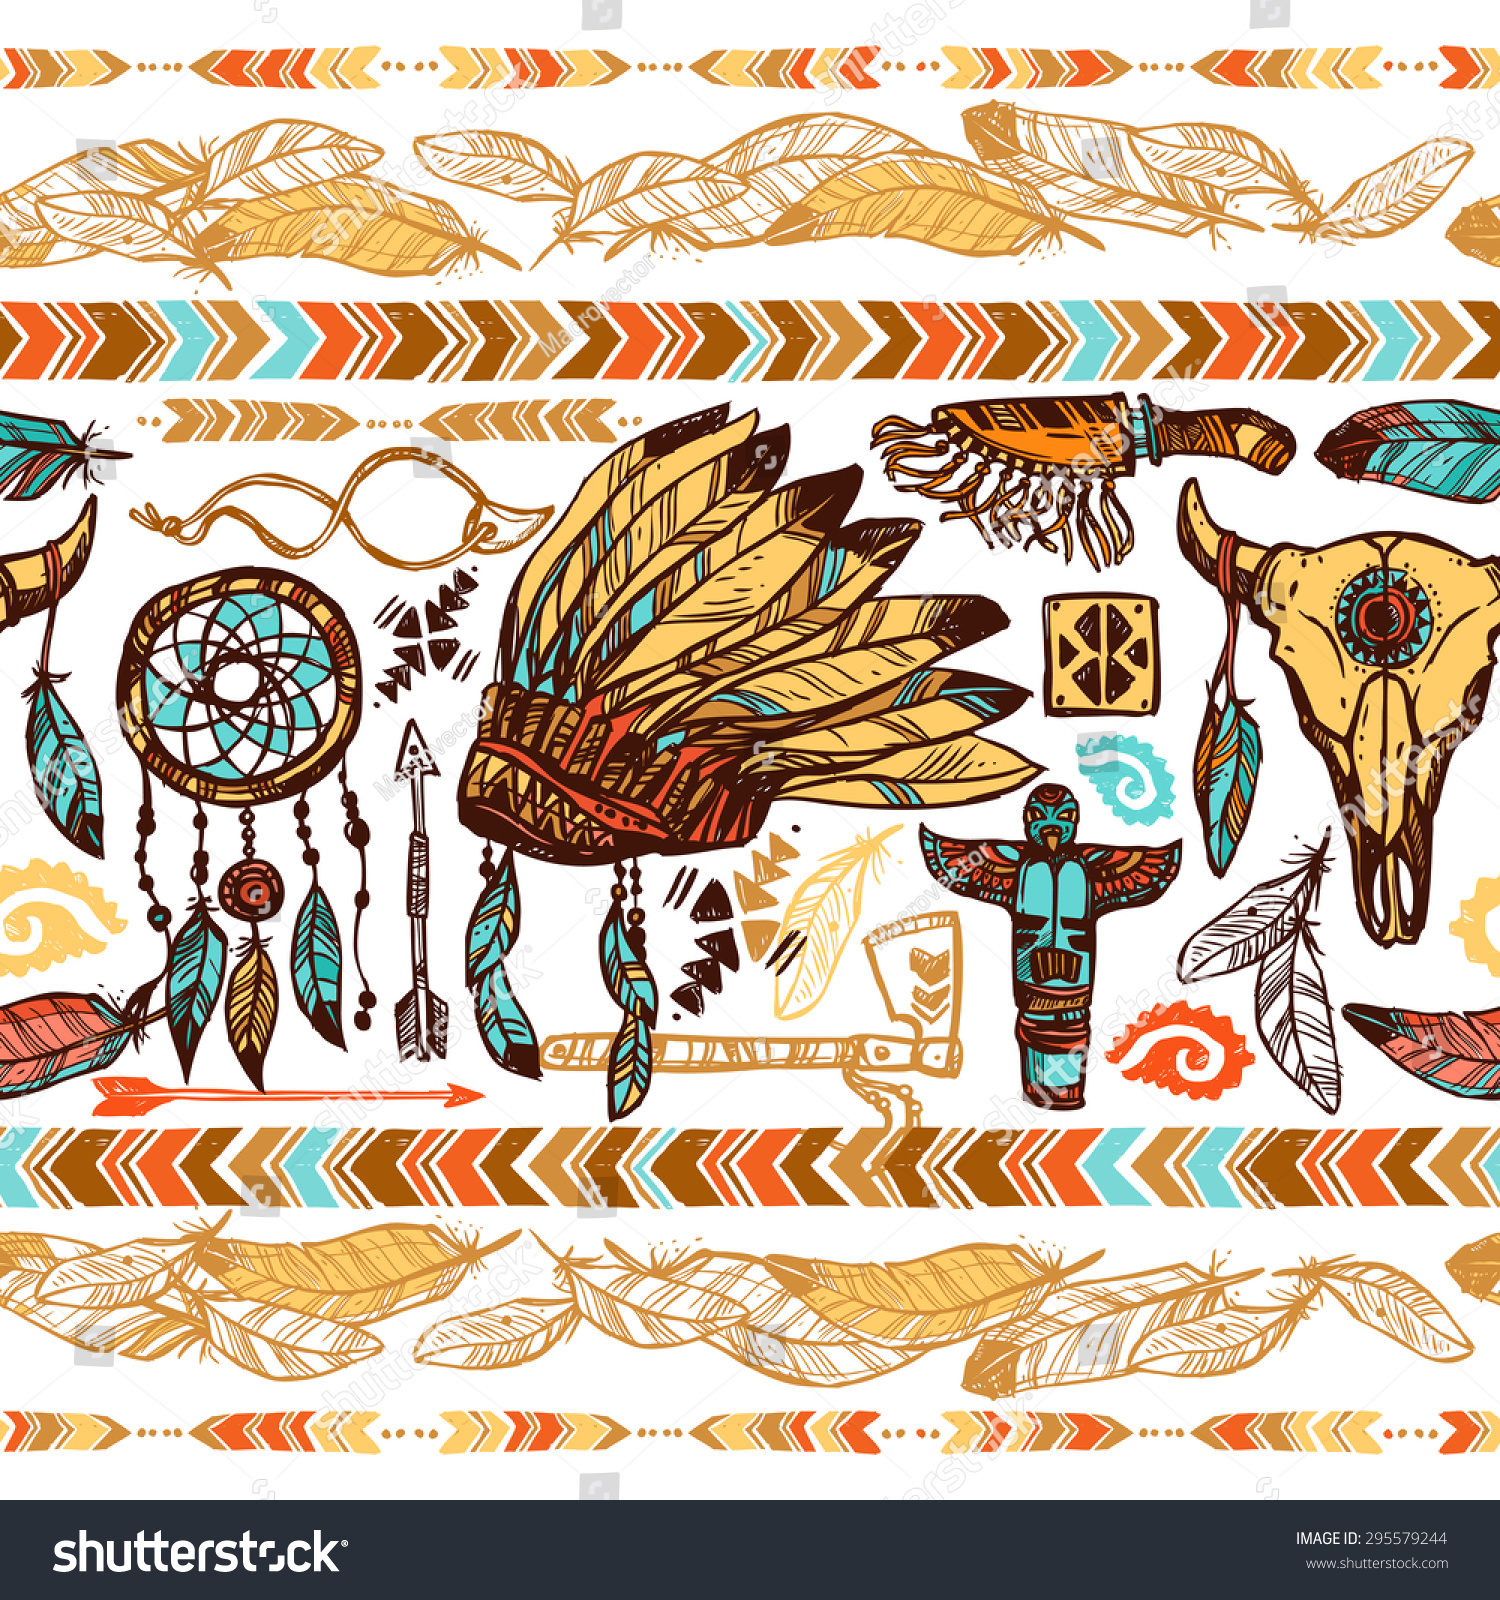 Native american ornaments - Native American Style Feathers Ornaments Tambourine War Bonnet And Totems Color Seamless Pattern Vector Illustration